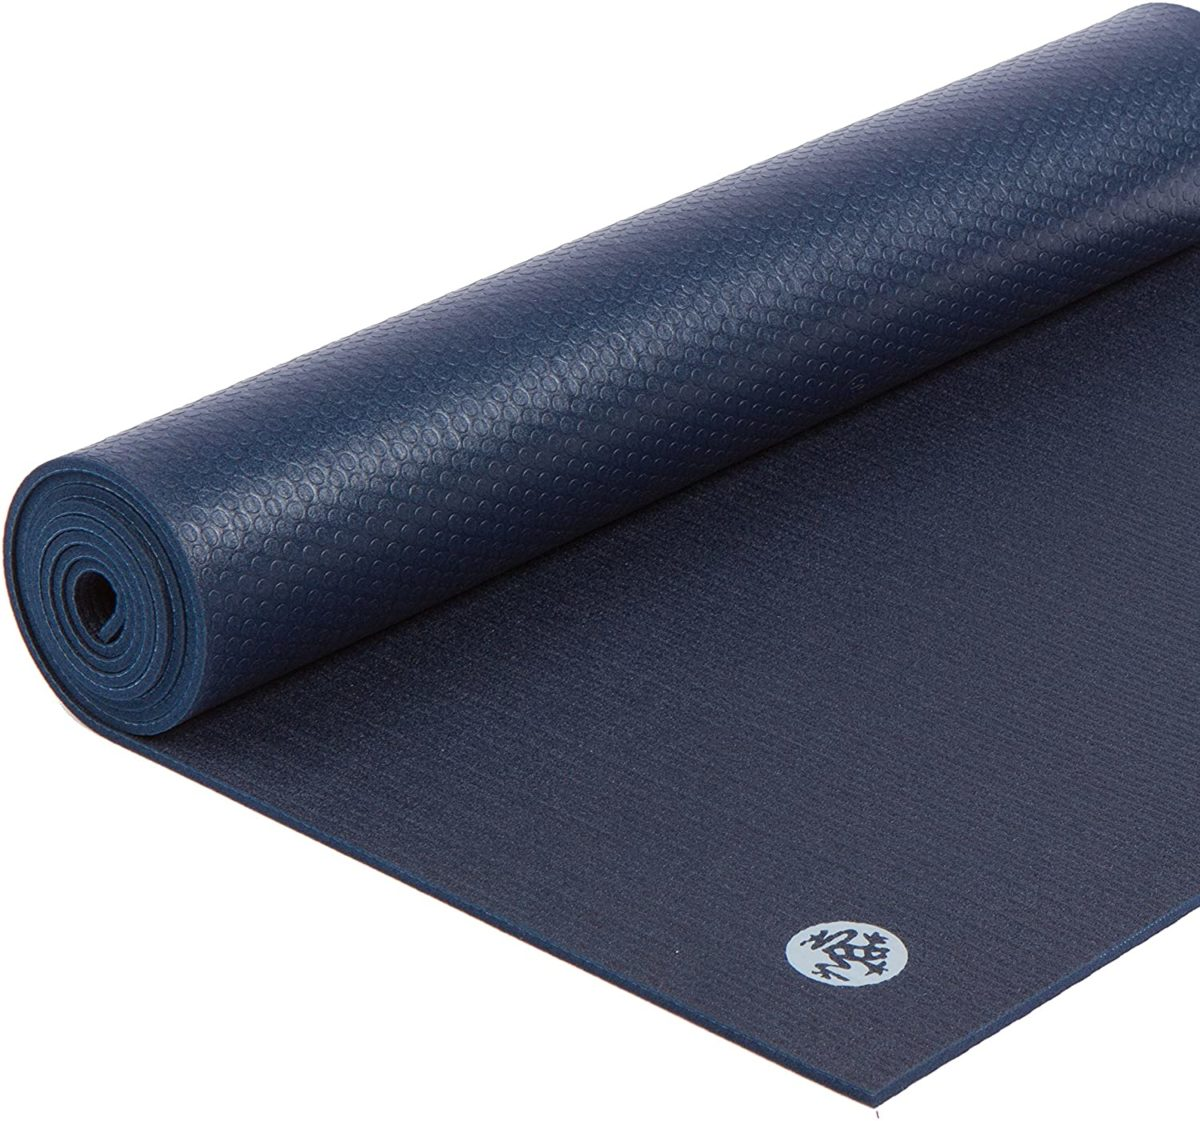 Celebrate Mom This  Christmas With These Top 50 Gifts for the One Who Can Do It All yoga